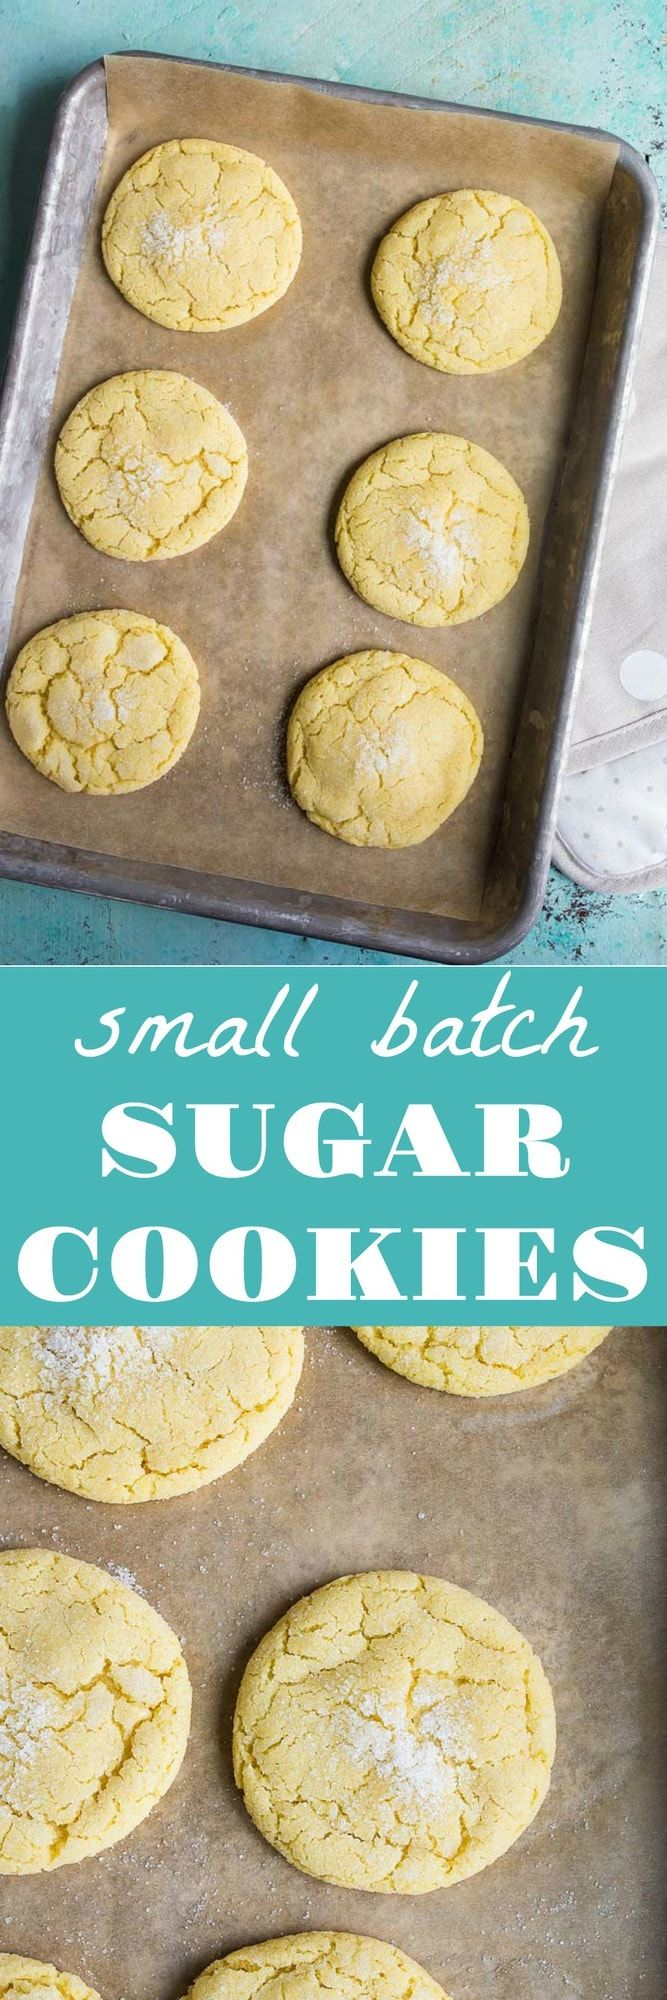 Small batch sugar cookies recipe for two. Recipe makes just 6 cookies. No chill sugar cookies. No chilling time required for half dozen sugar cookies. #easysugarcookies #sugarcookiesrecipe #nochillsugarcookies #classicsugarcookie #sugarcookies